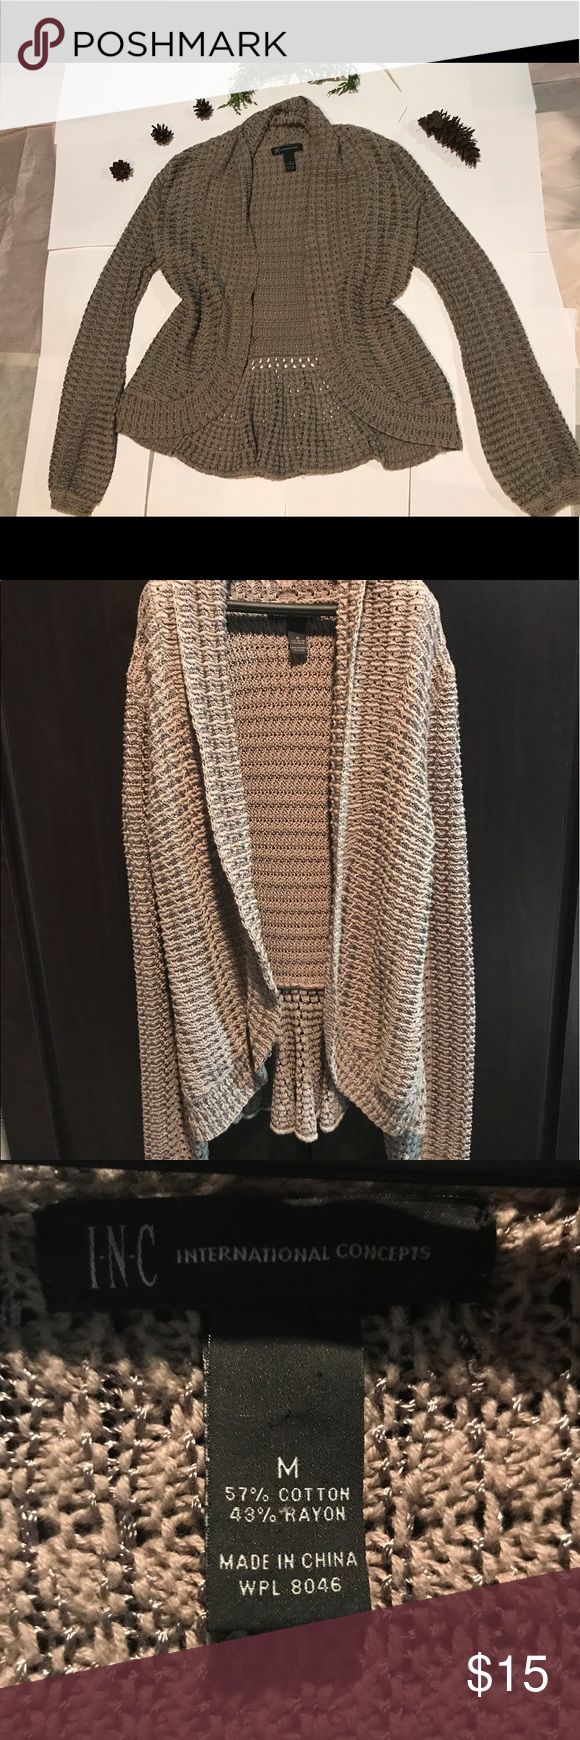 ✨Sold! ✨Super Soft Cotton Sweater | Cotton sweater, Hourglass ...